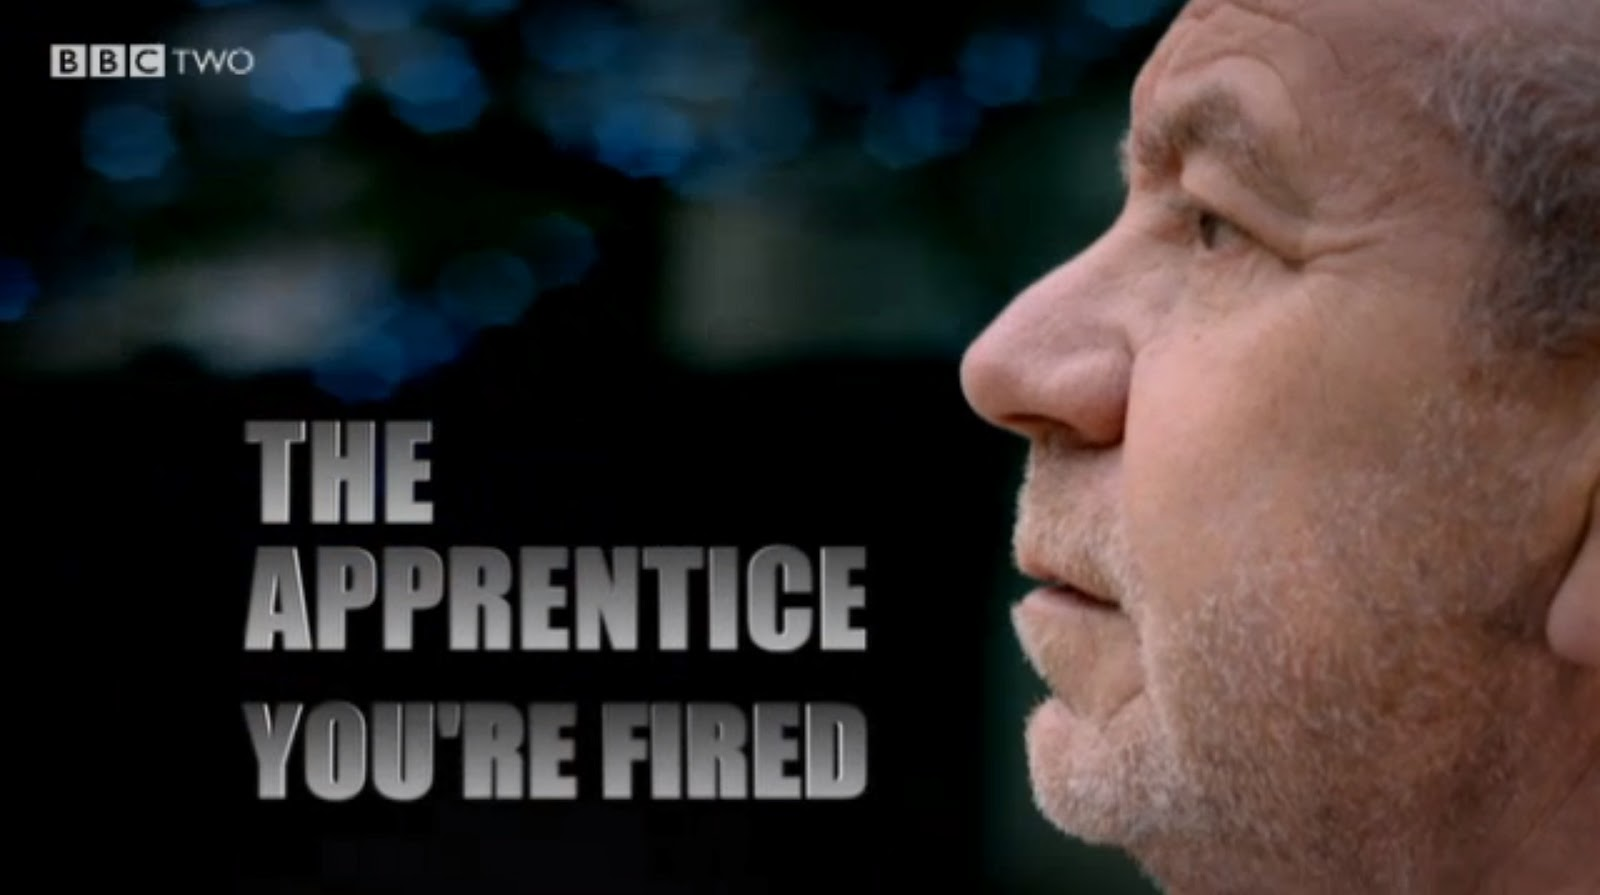 Celebrity apprentice youre fired